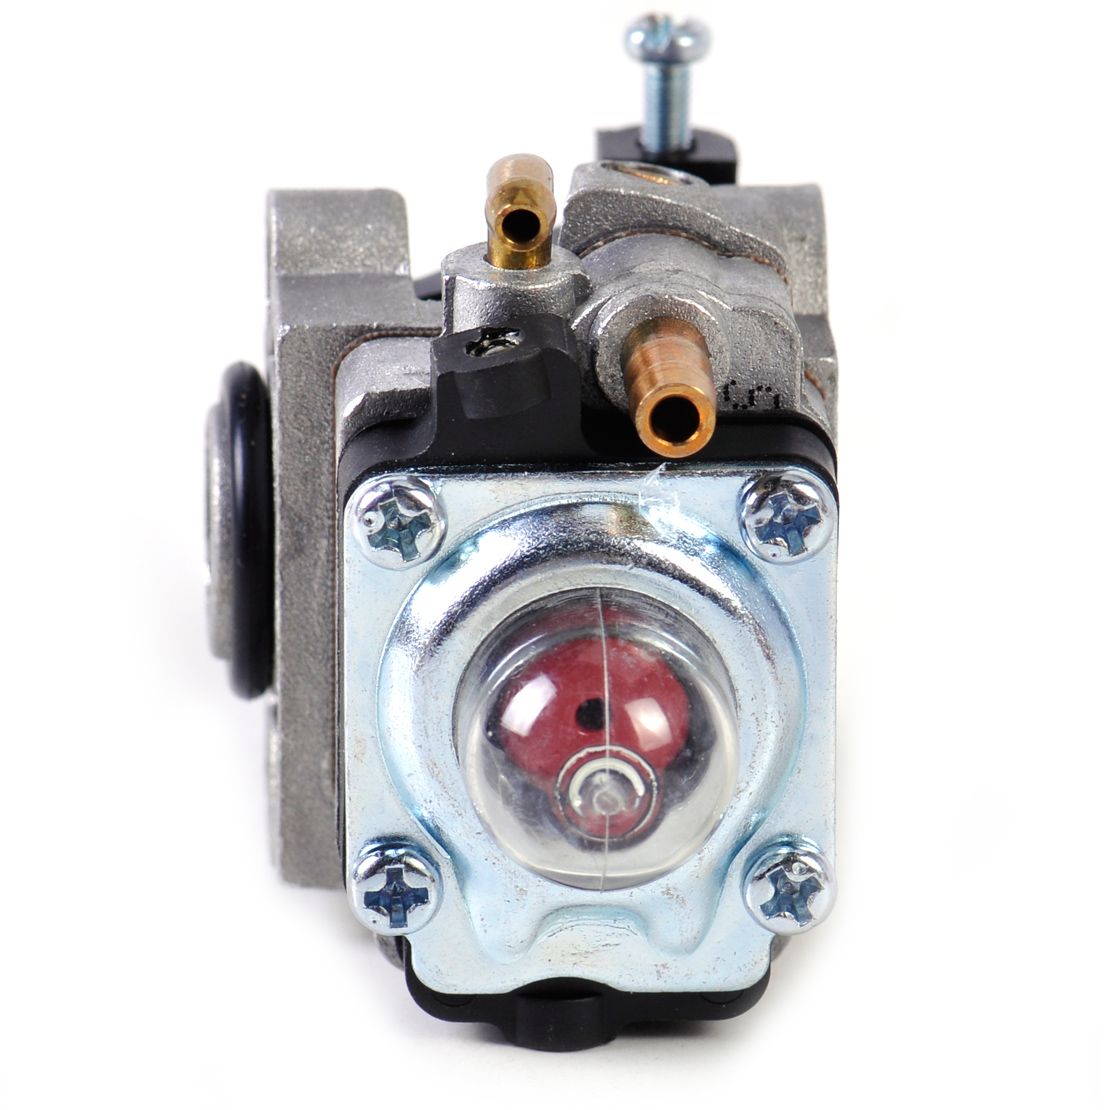 LETAOSK Carburetor Carb fit for Ryobi MTD Bolens Troy-Bilt Gas Trimmer753-04296 753-04745